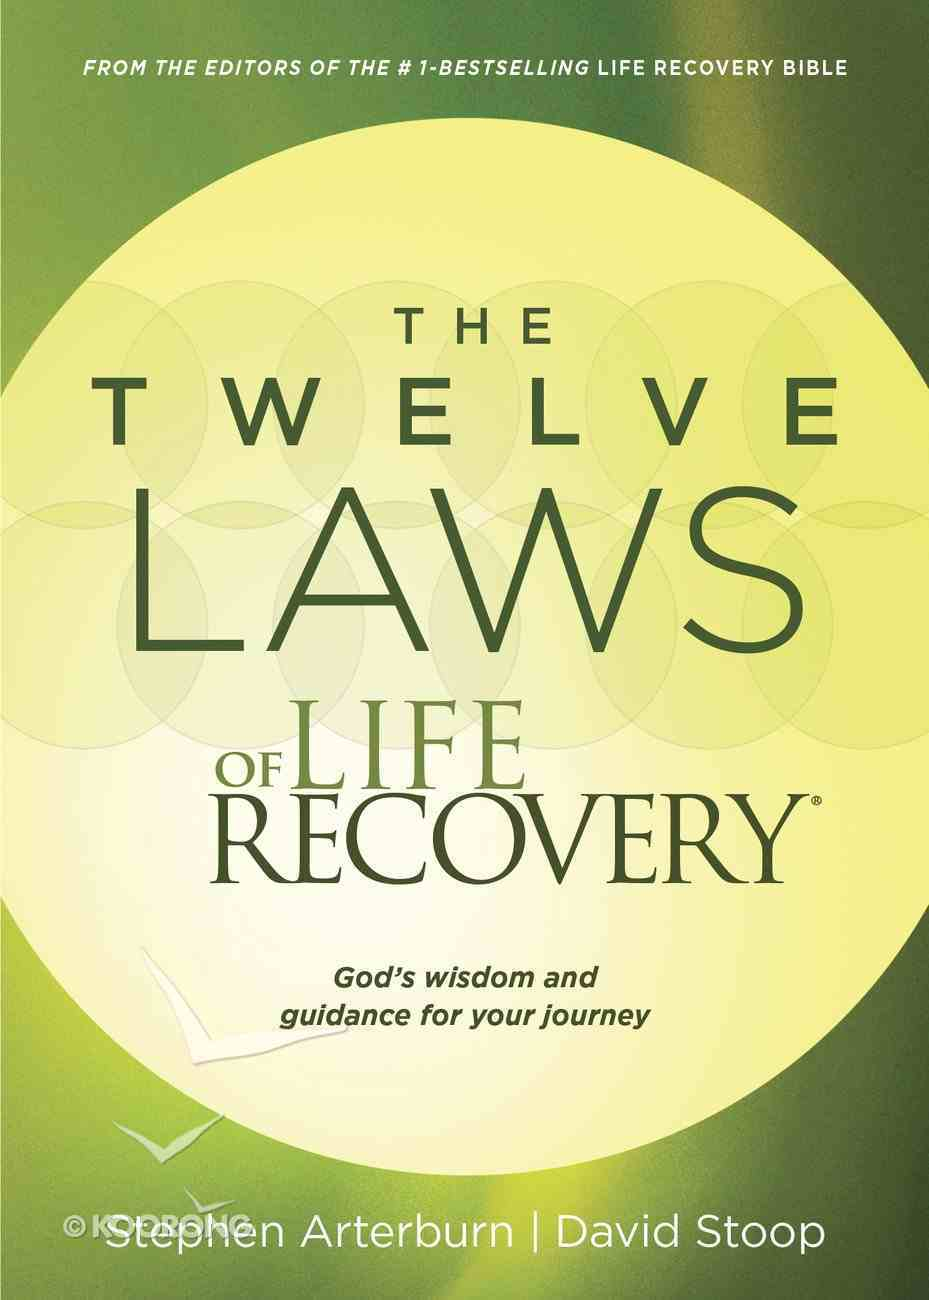 The Twelve Laws of Life Recovery Paperback